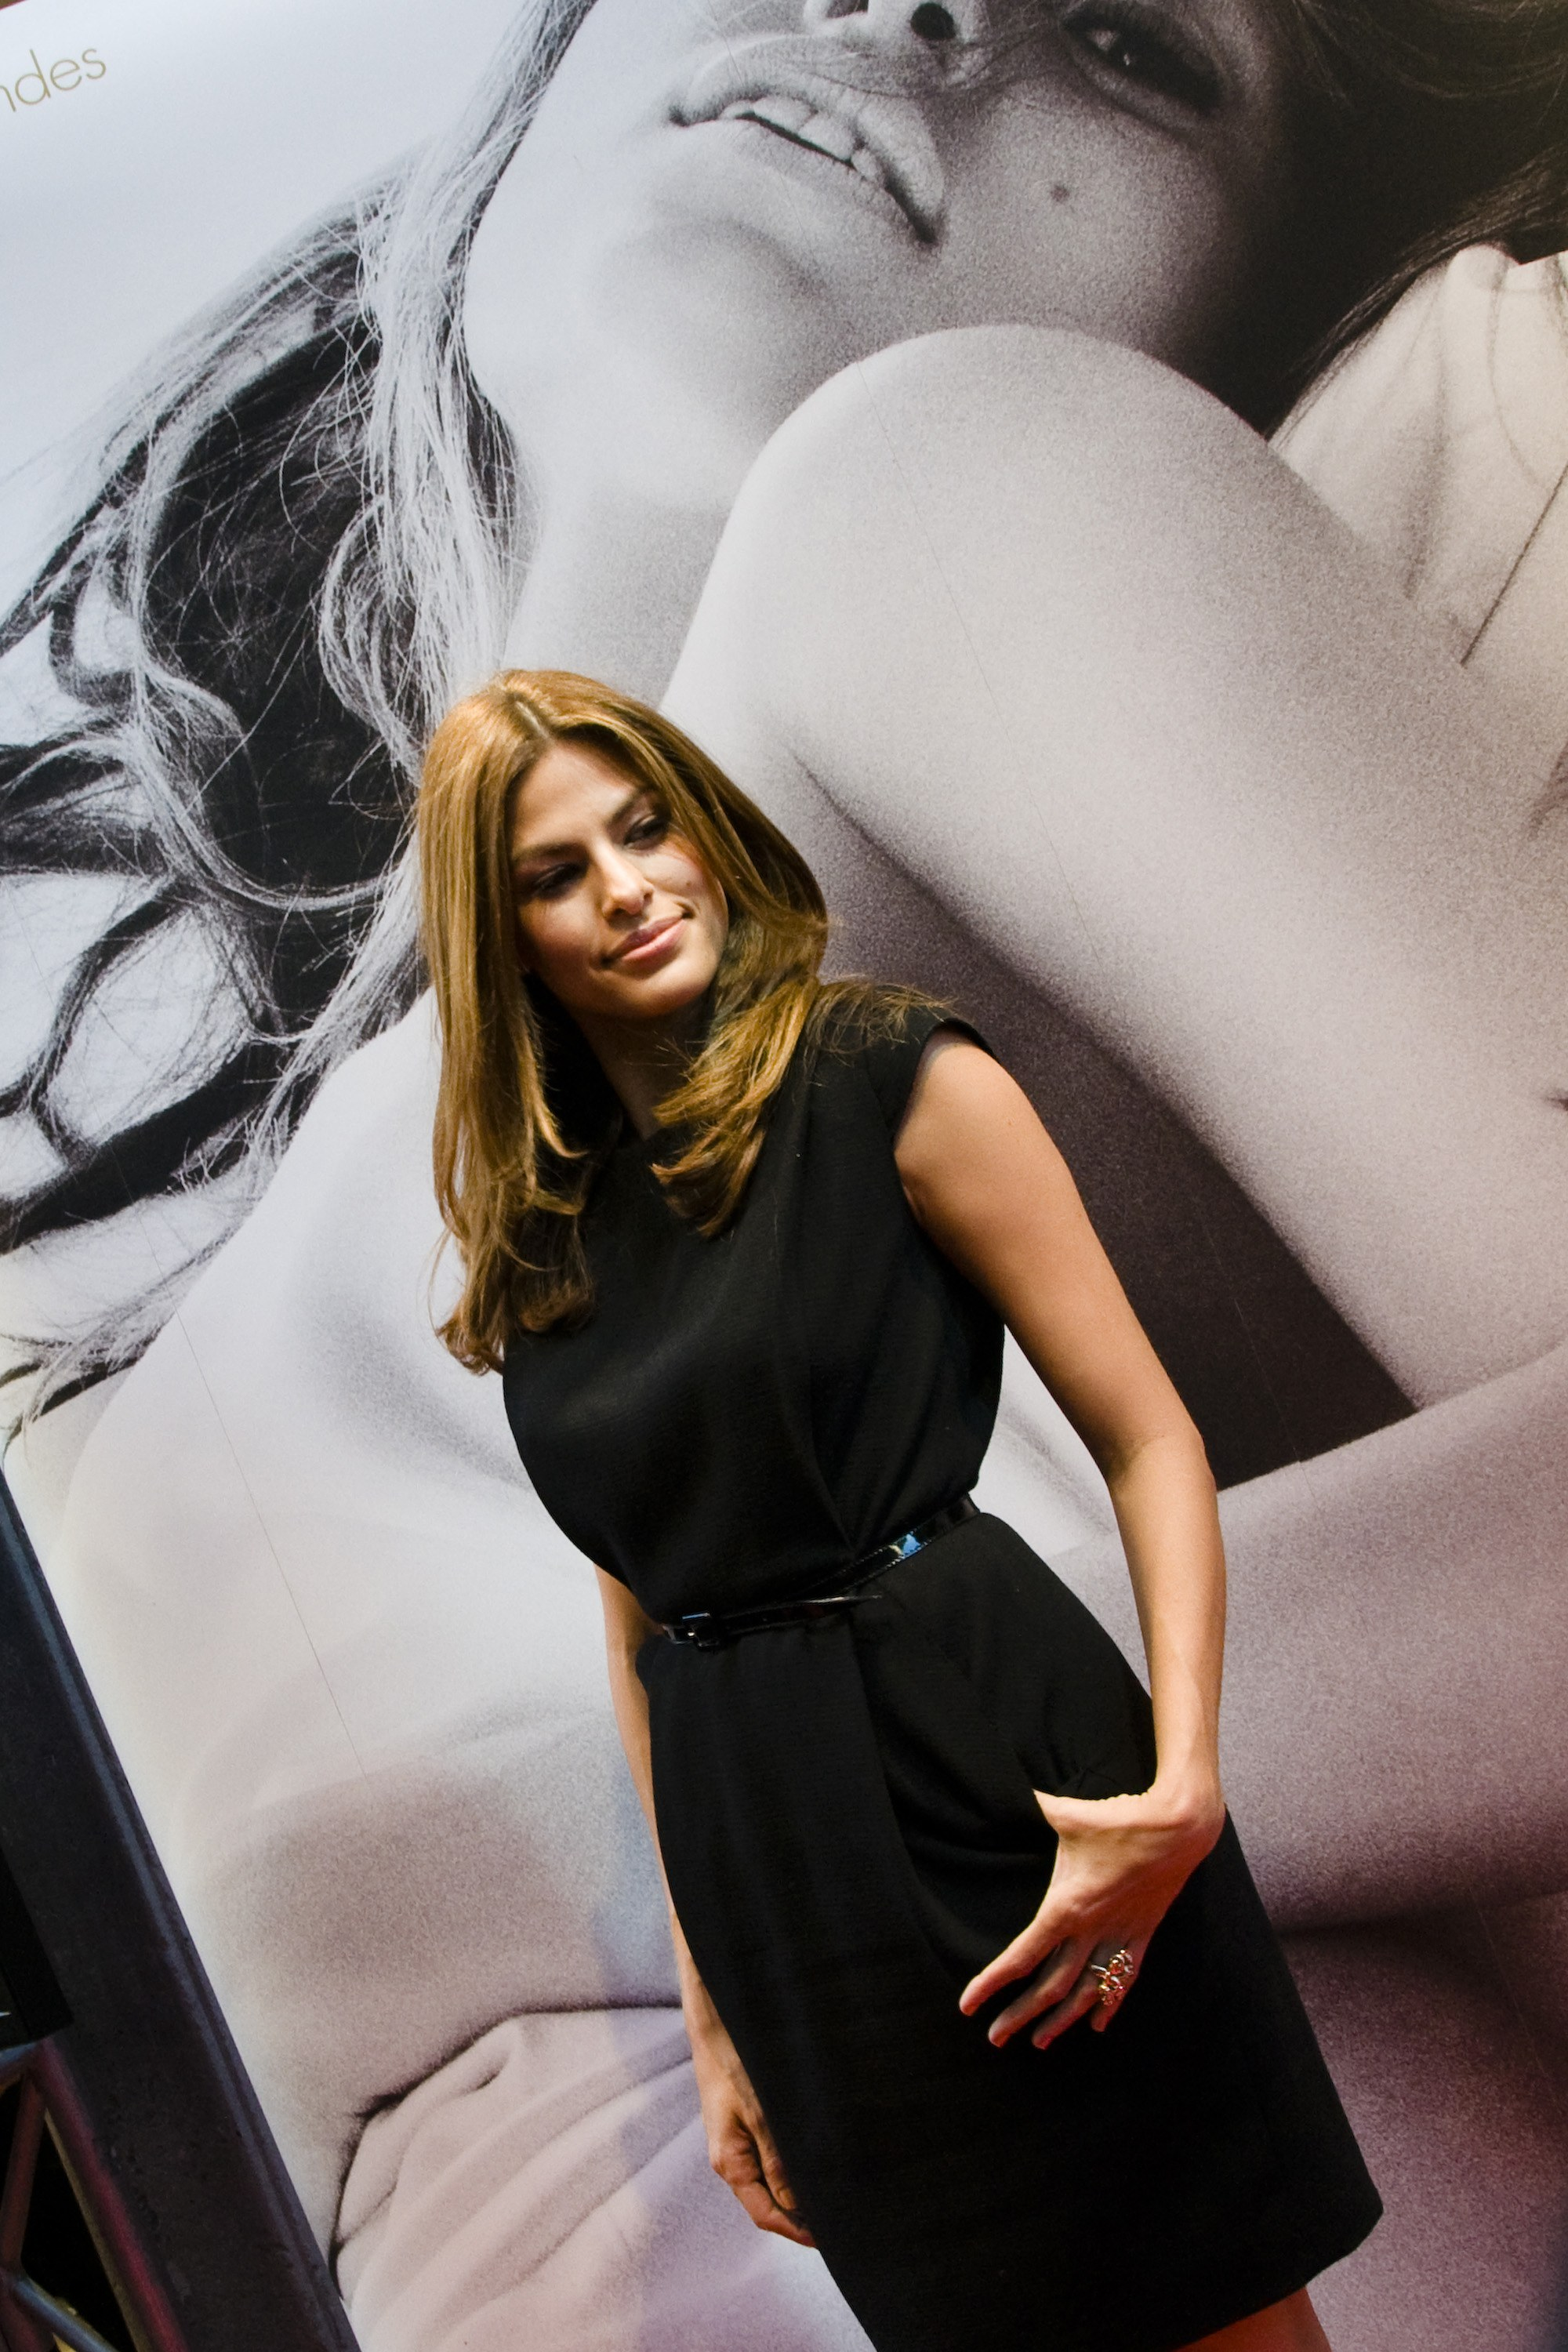 00227_Eva_Mendes_in_Rome_to_promote_the_new_fragrance_of_Calvin_Klein_CU_ISA_0007_122_1073lo.jpg